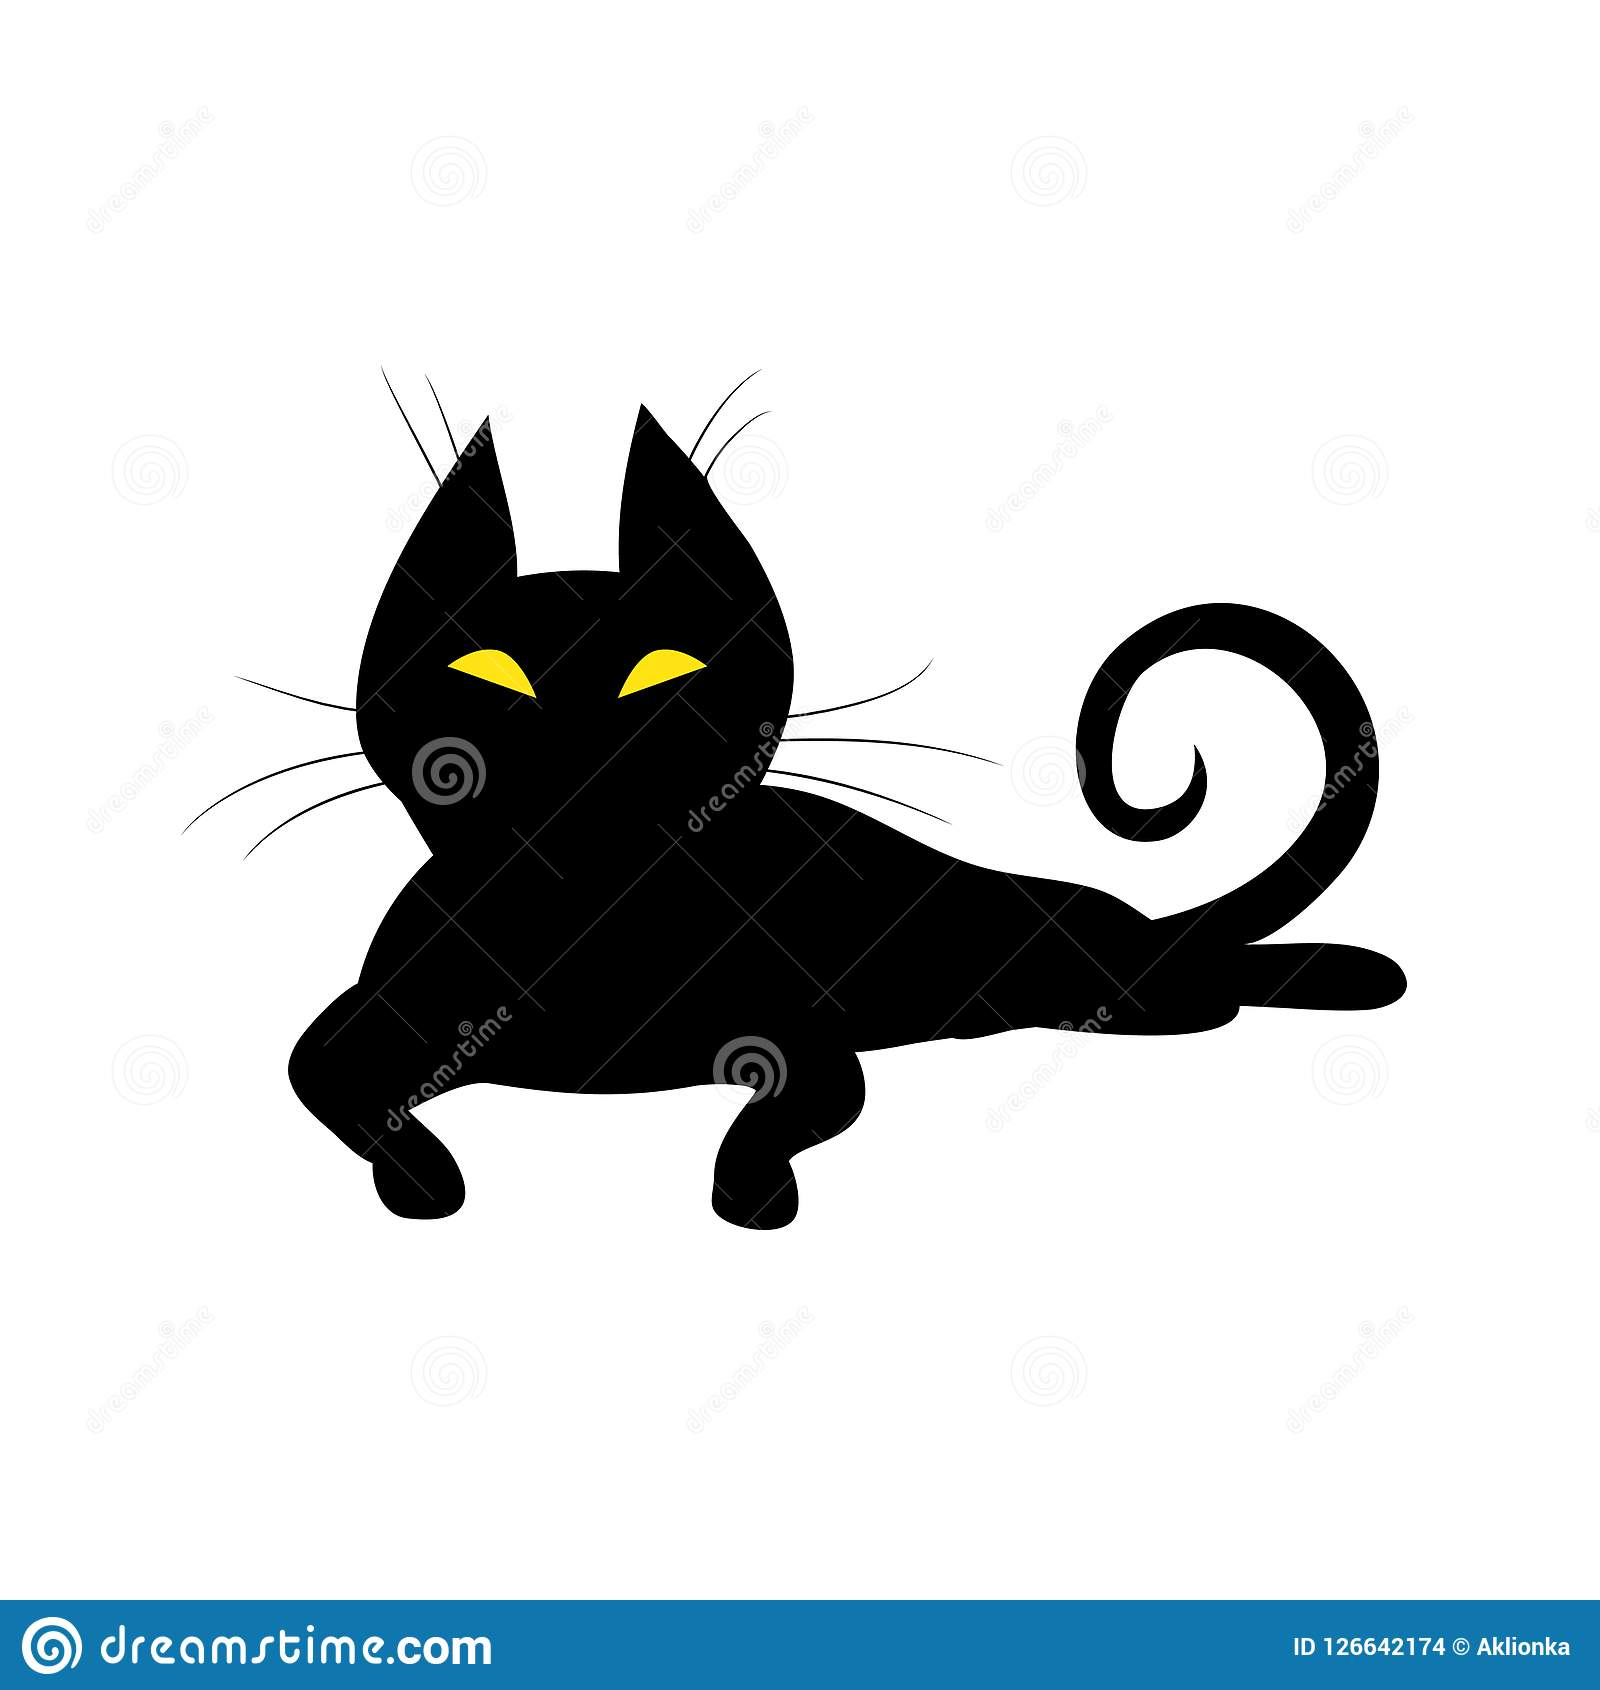 Silhouette Of Black Witch Cat With Yellow Eyes Stock Vector Illustration Of Icon Flat 126642174